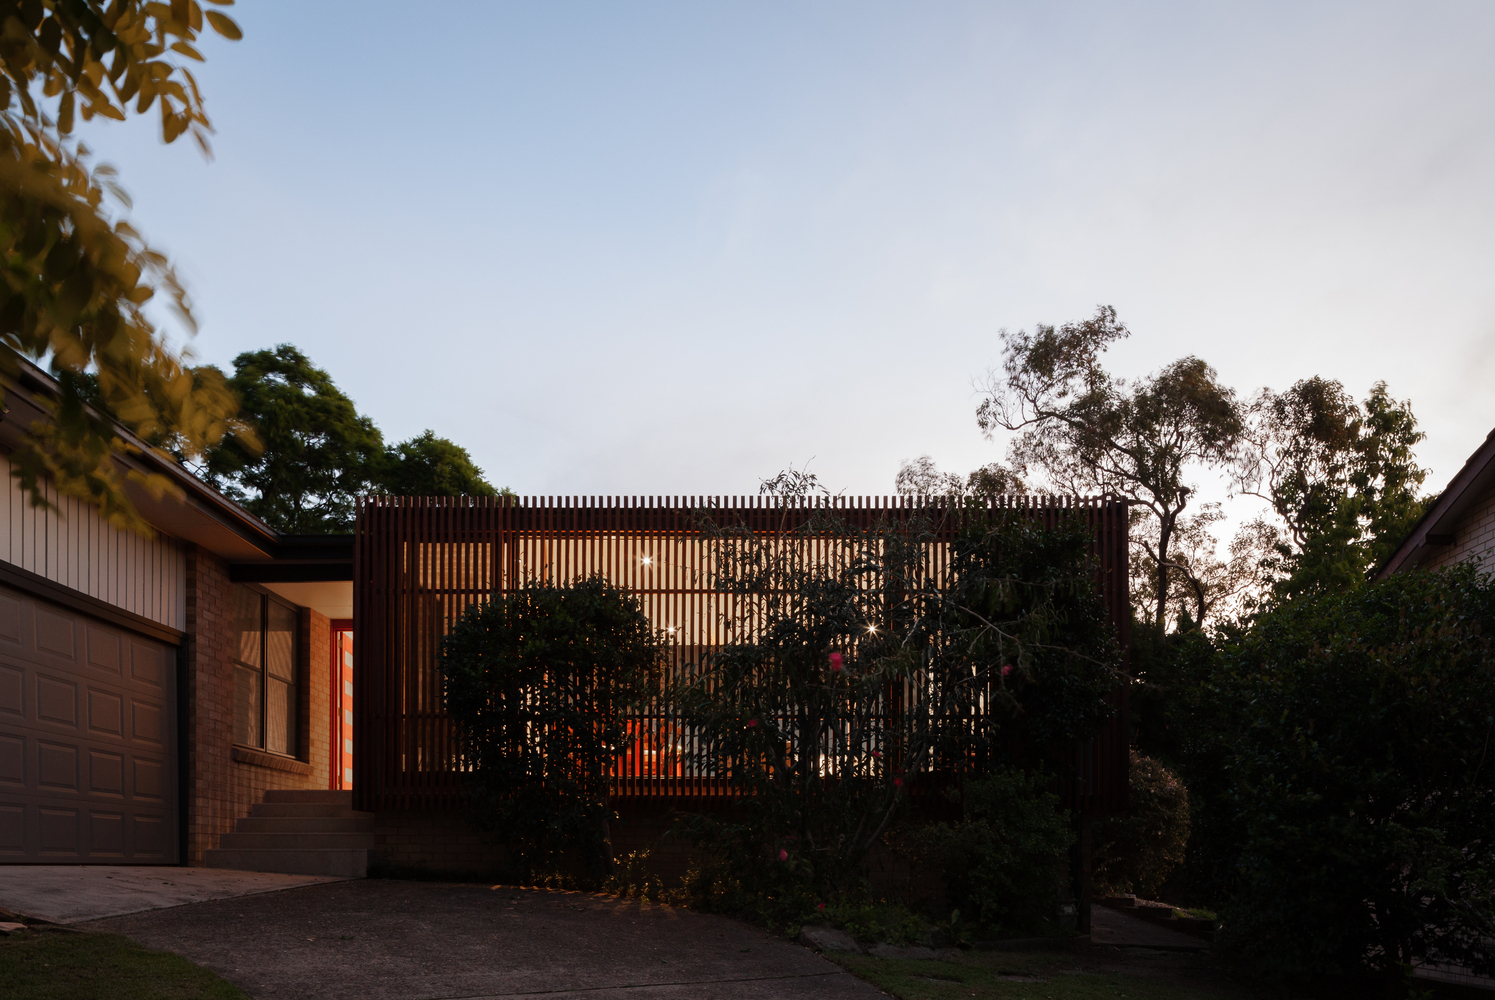 This Home Shines By Extending the Living Area Into the Verandah